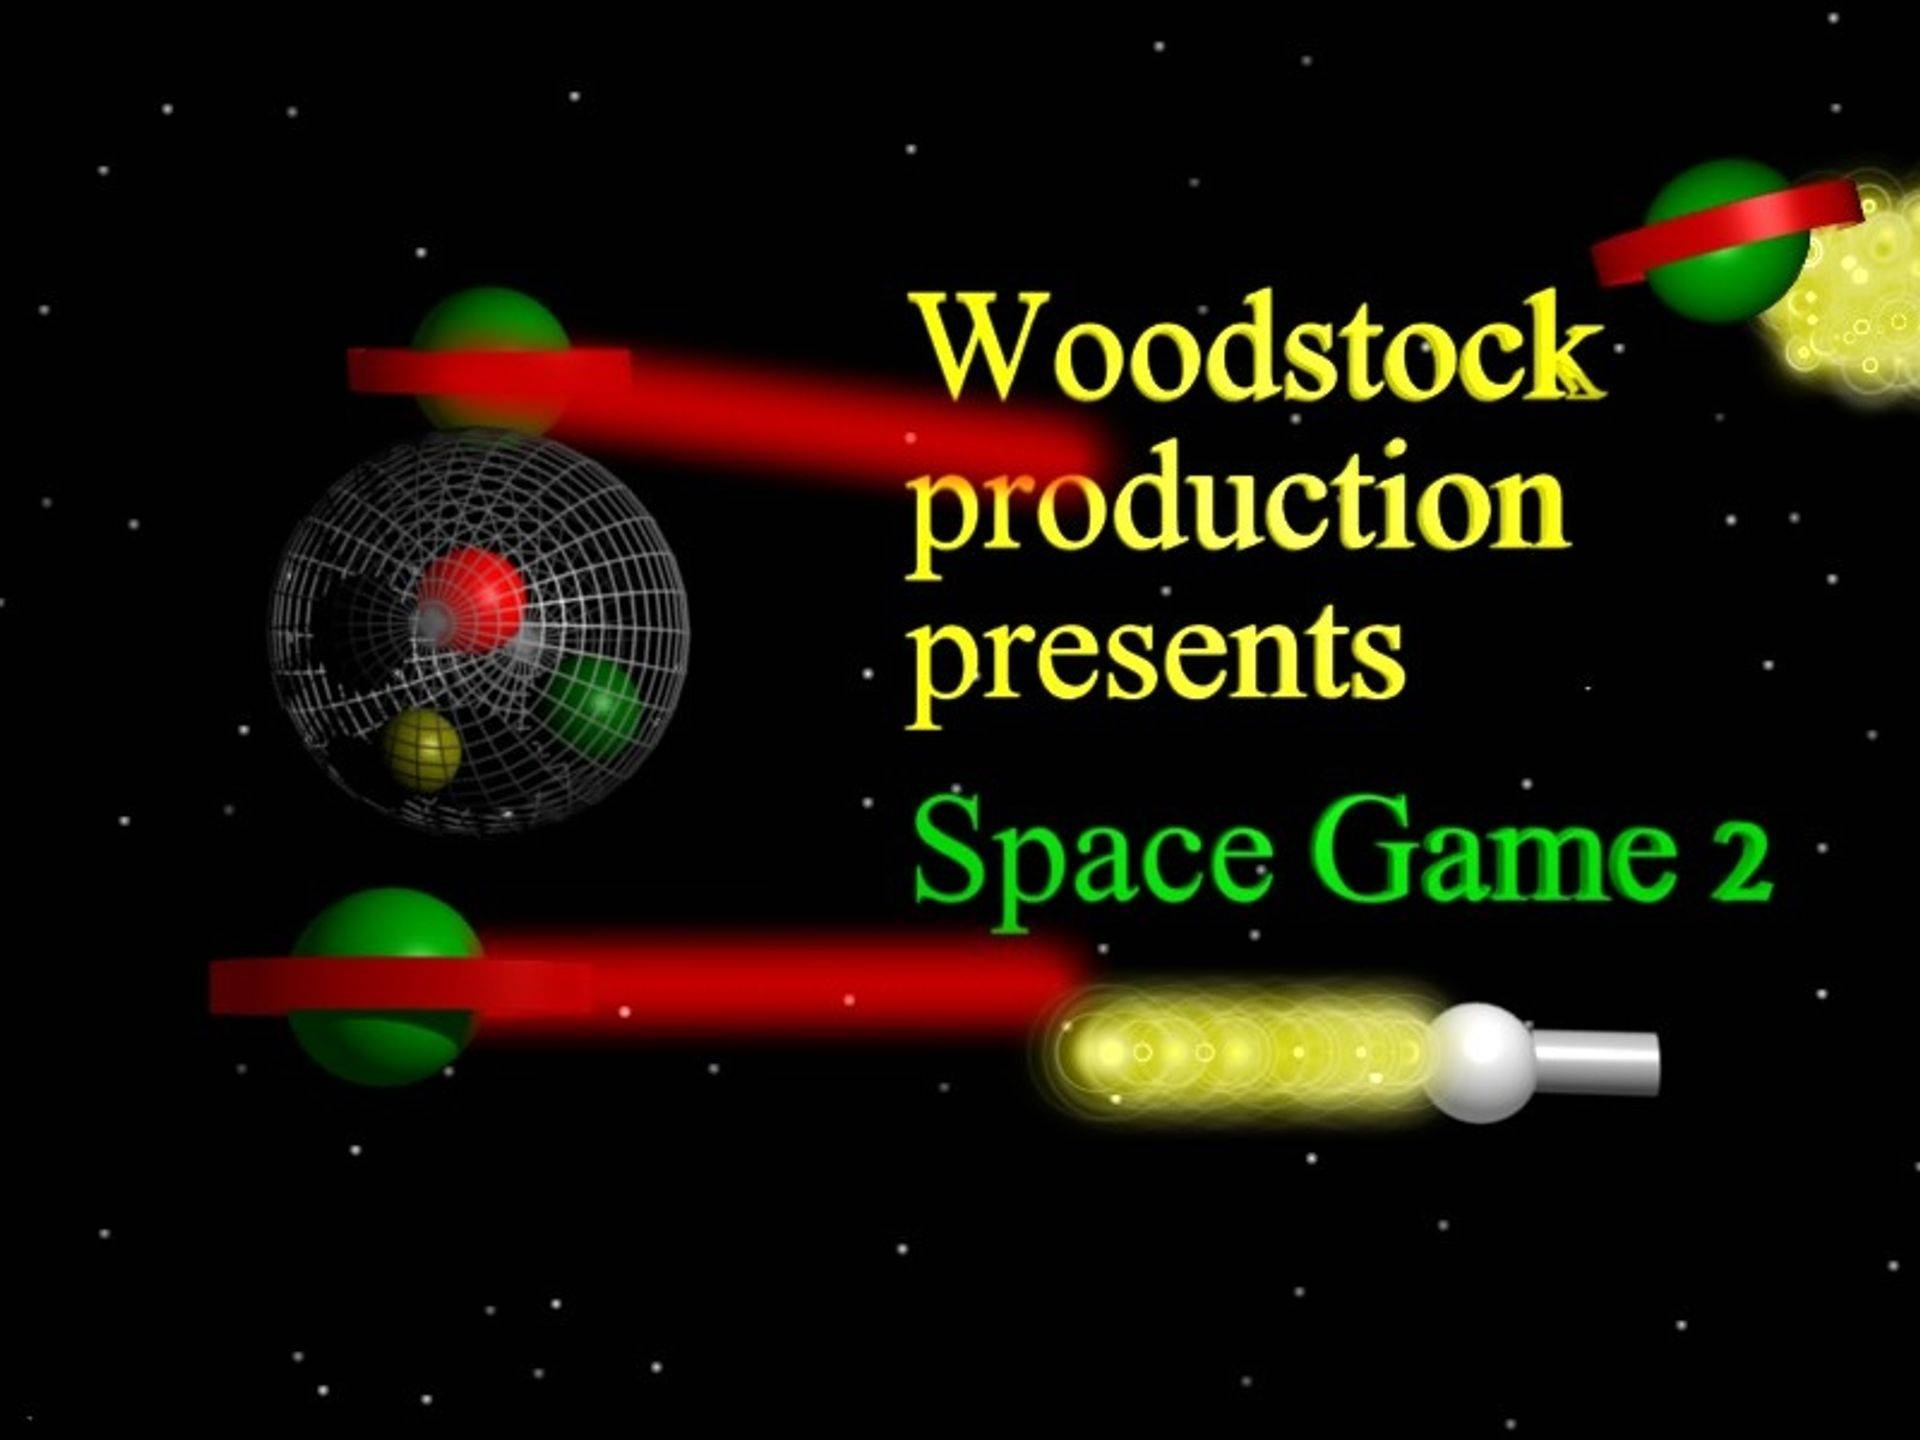 Purchase this amazing space shooter for windows 64 bit computers for only $9.